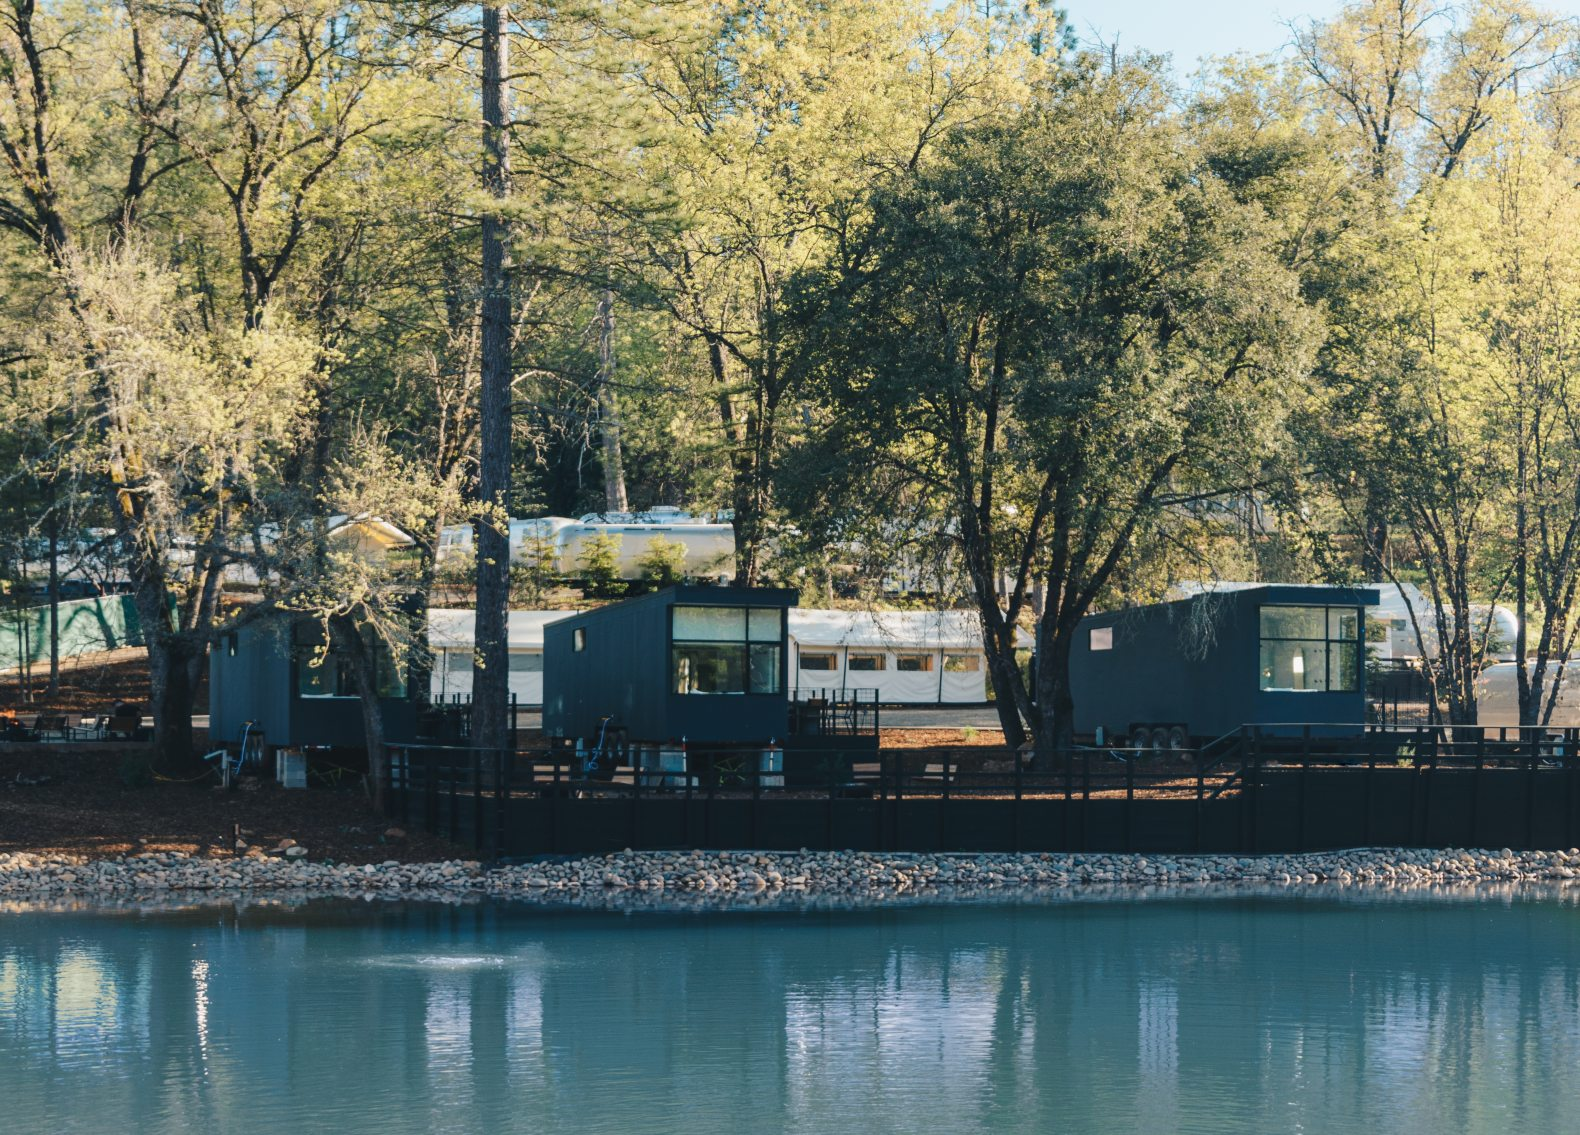 Yosemite camping site unveils series of ADA-compliant tiny cabins